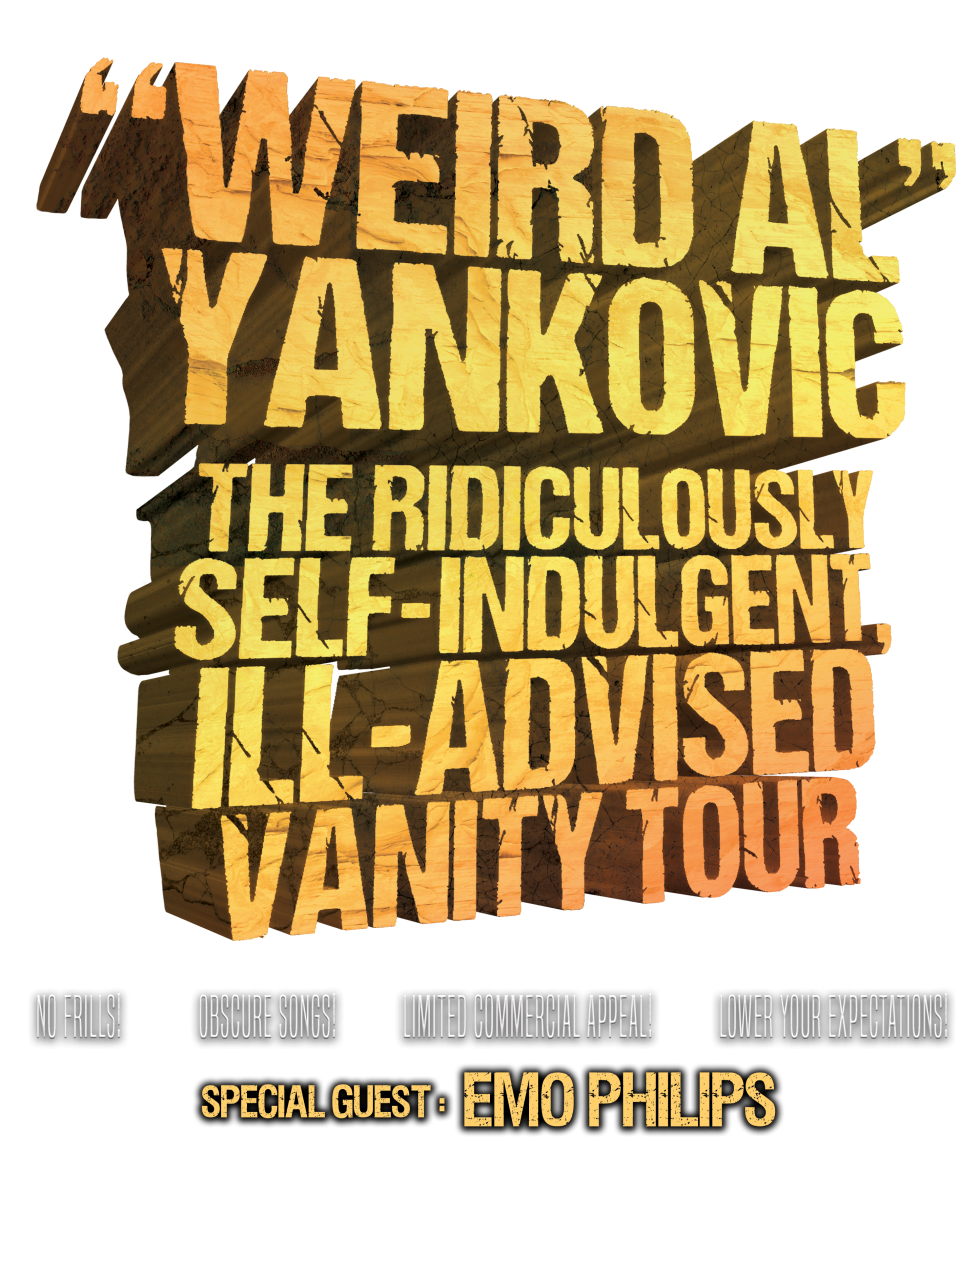 Weird al yankovic meet greet packages and upgrades weird al yankovic the ridiculously self indulgent ill advised vanity 2018 vip meet greet kristyandbryce Images